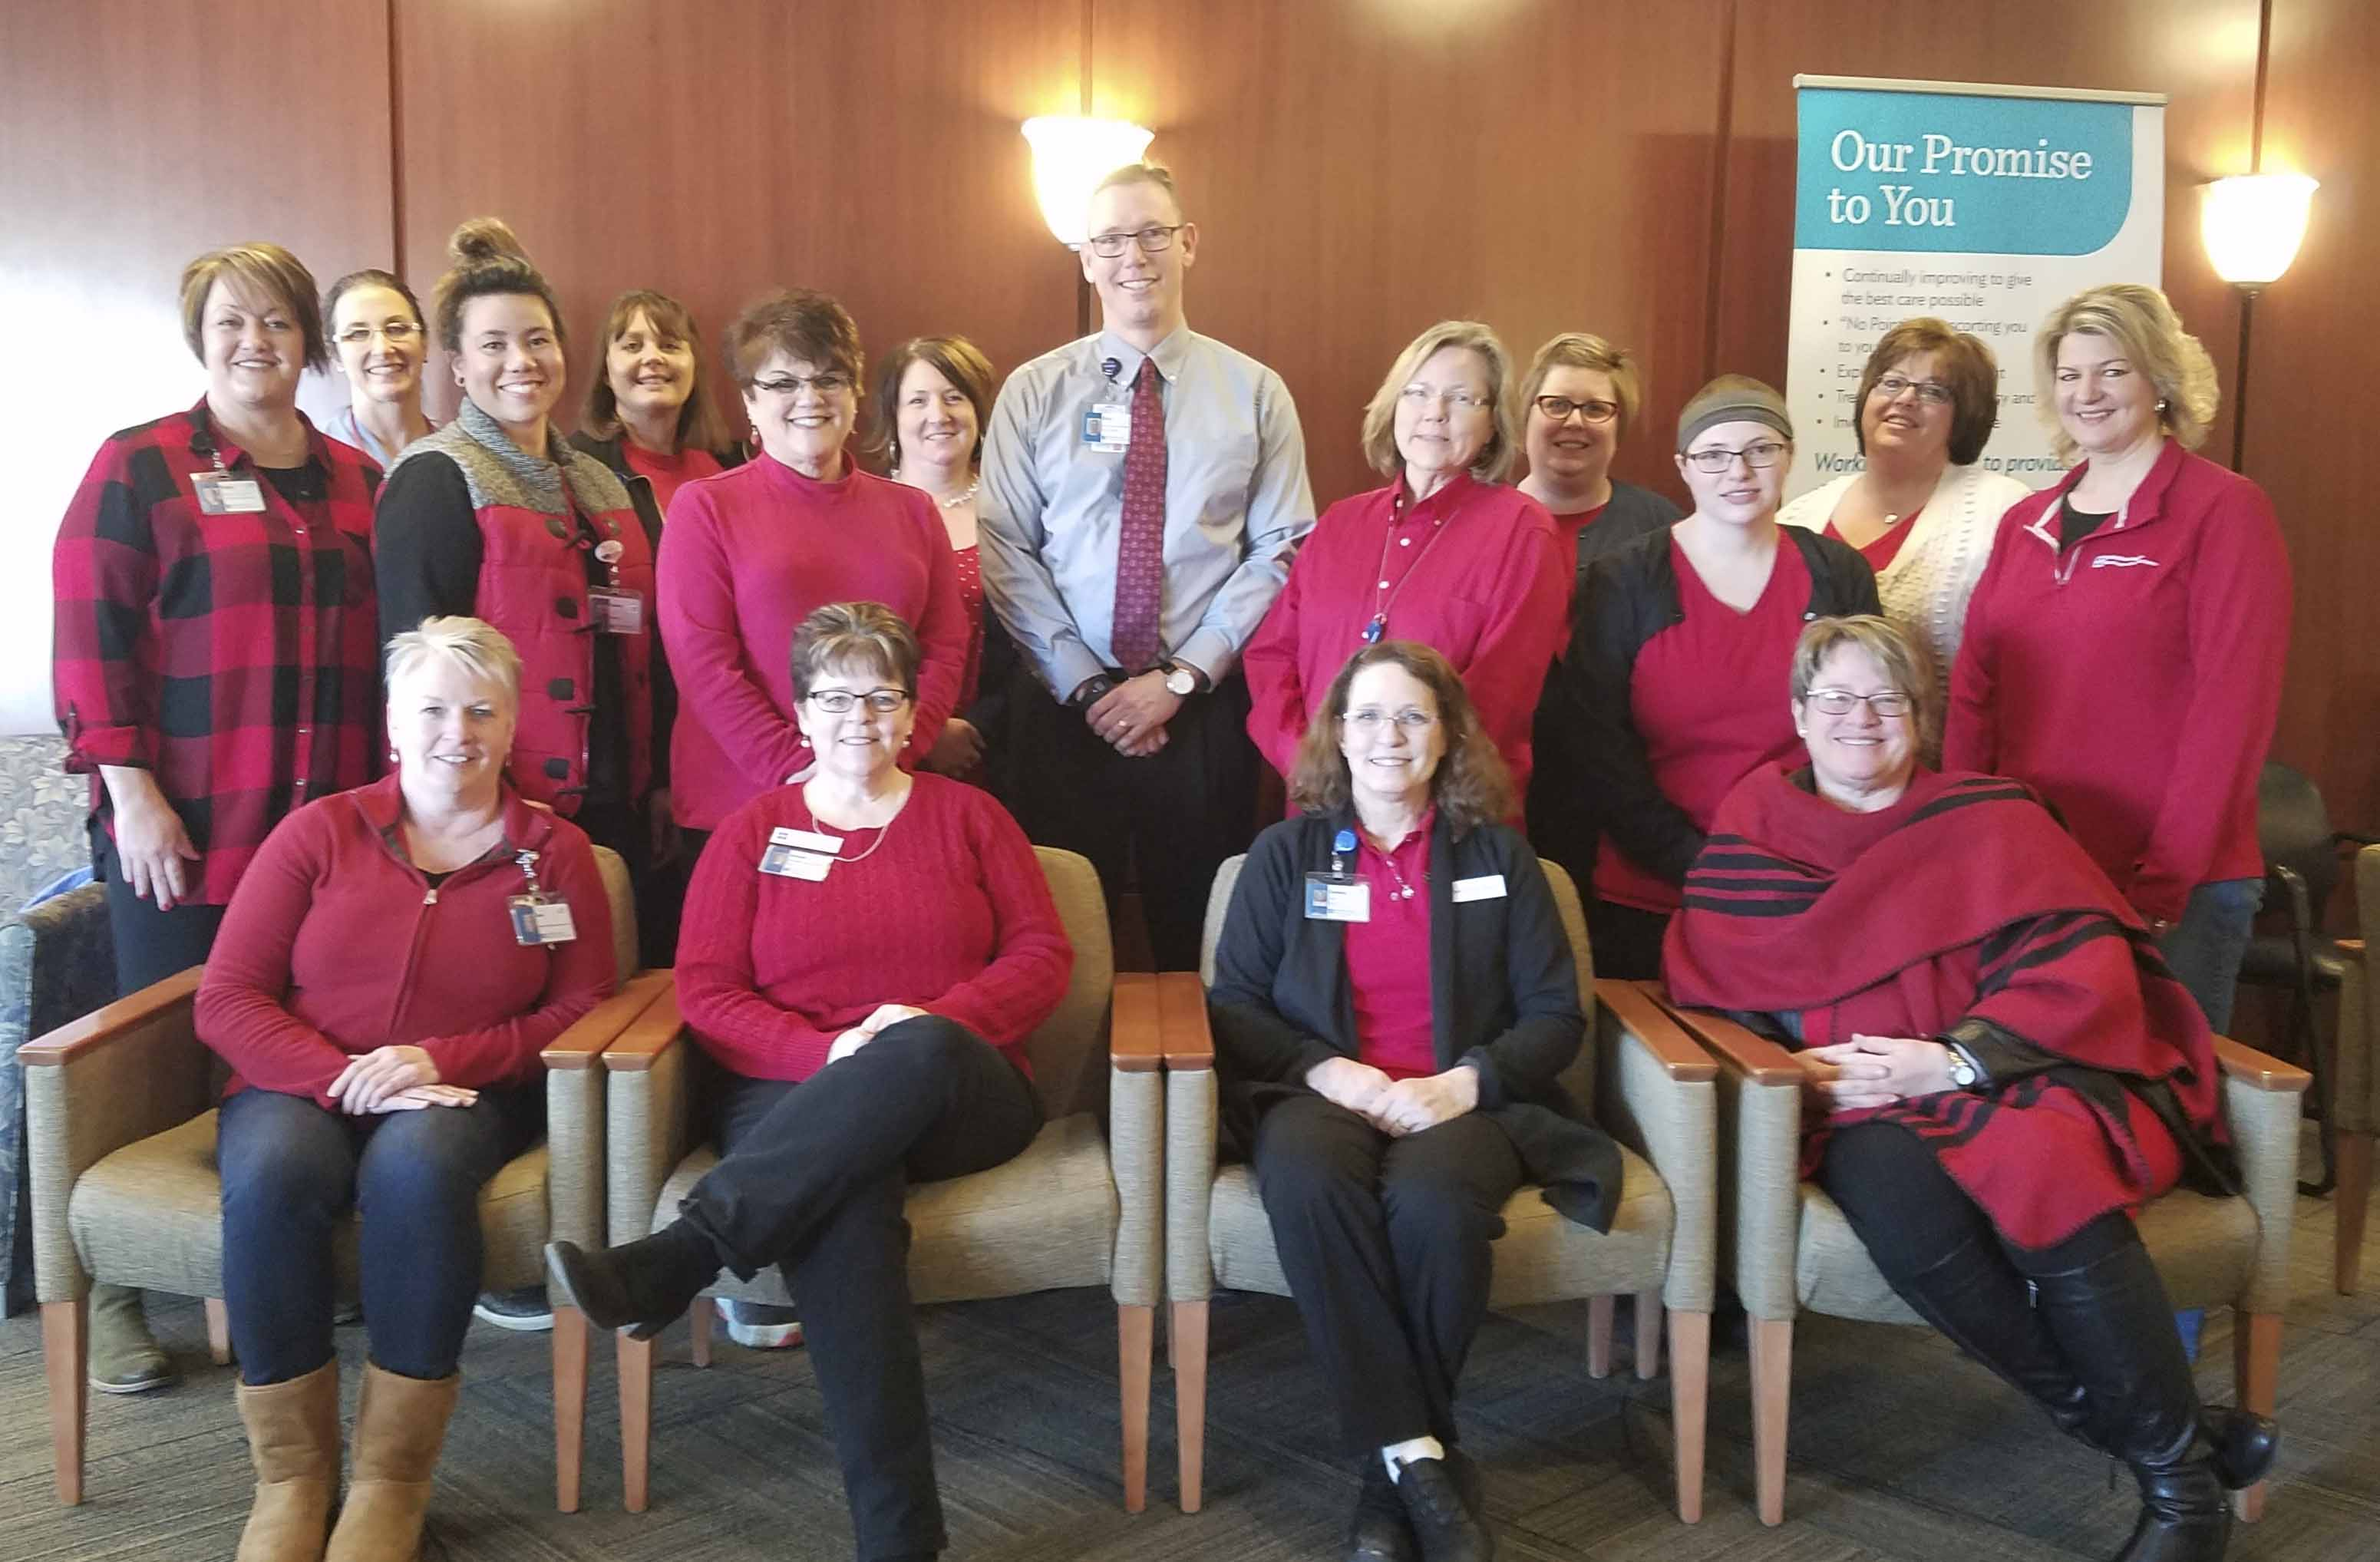 Employees at Jones Regional Medical Center show off their red attire for National Wear Red Day to show support for women's heart disease. (Photo by Kim Brooks)